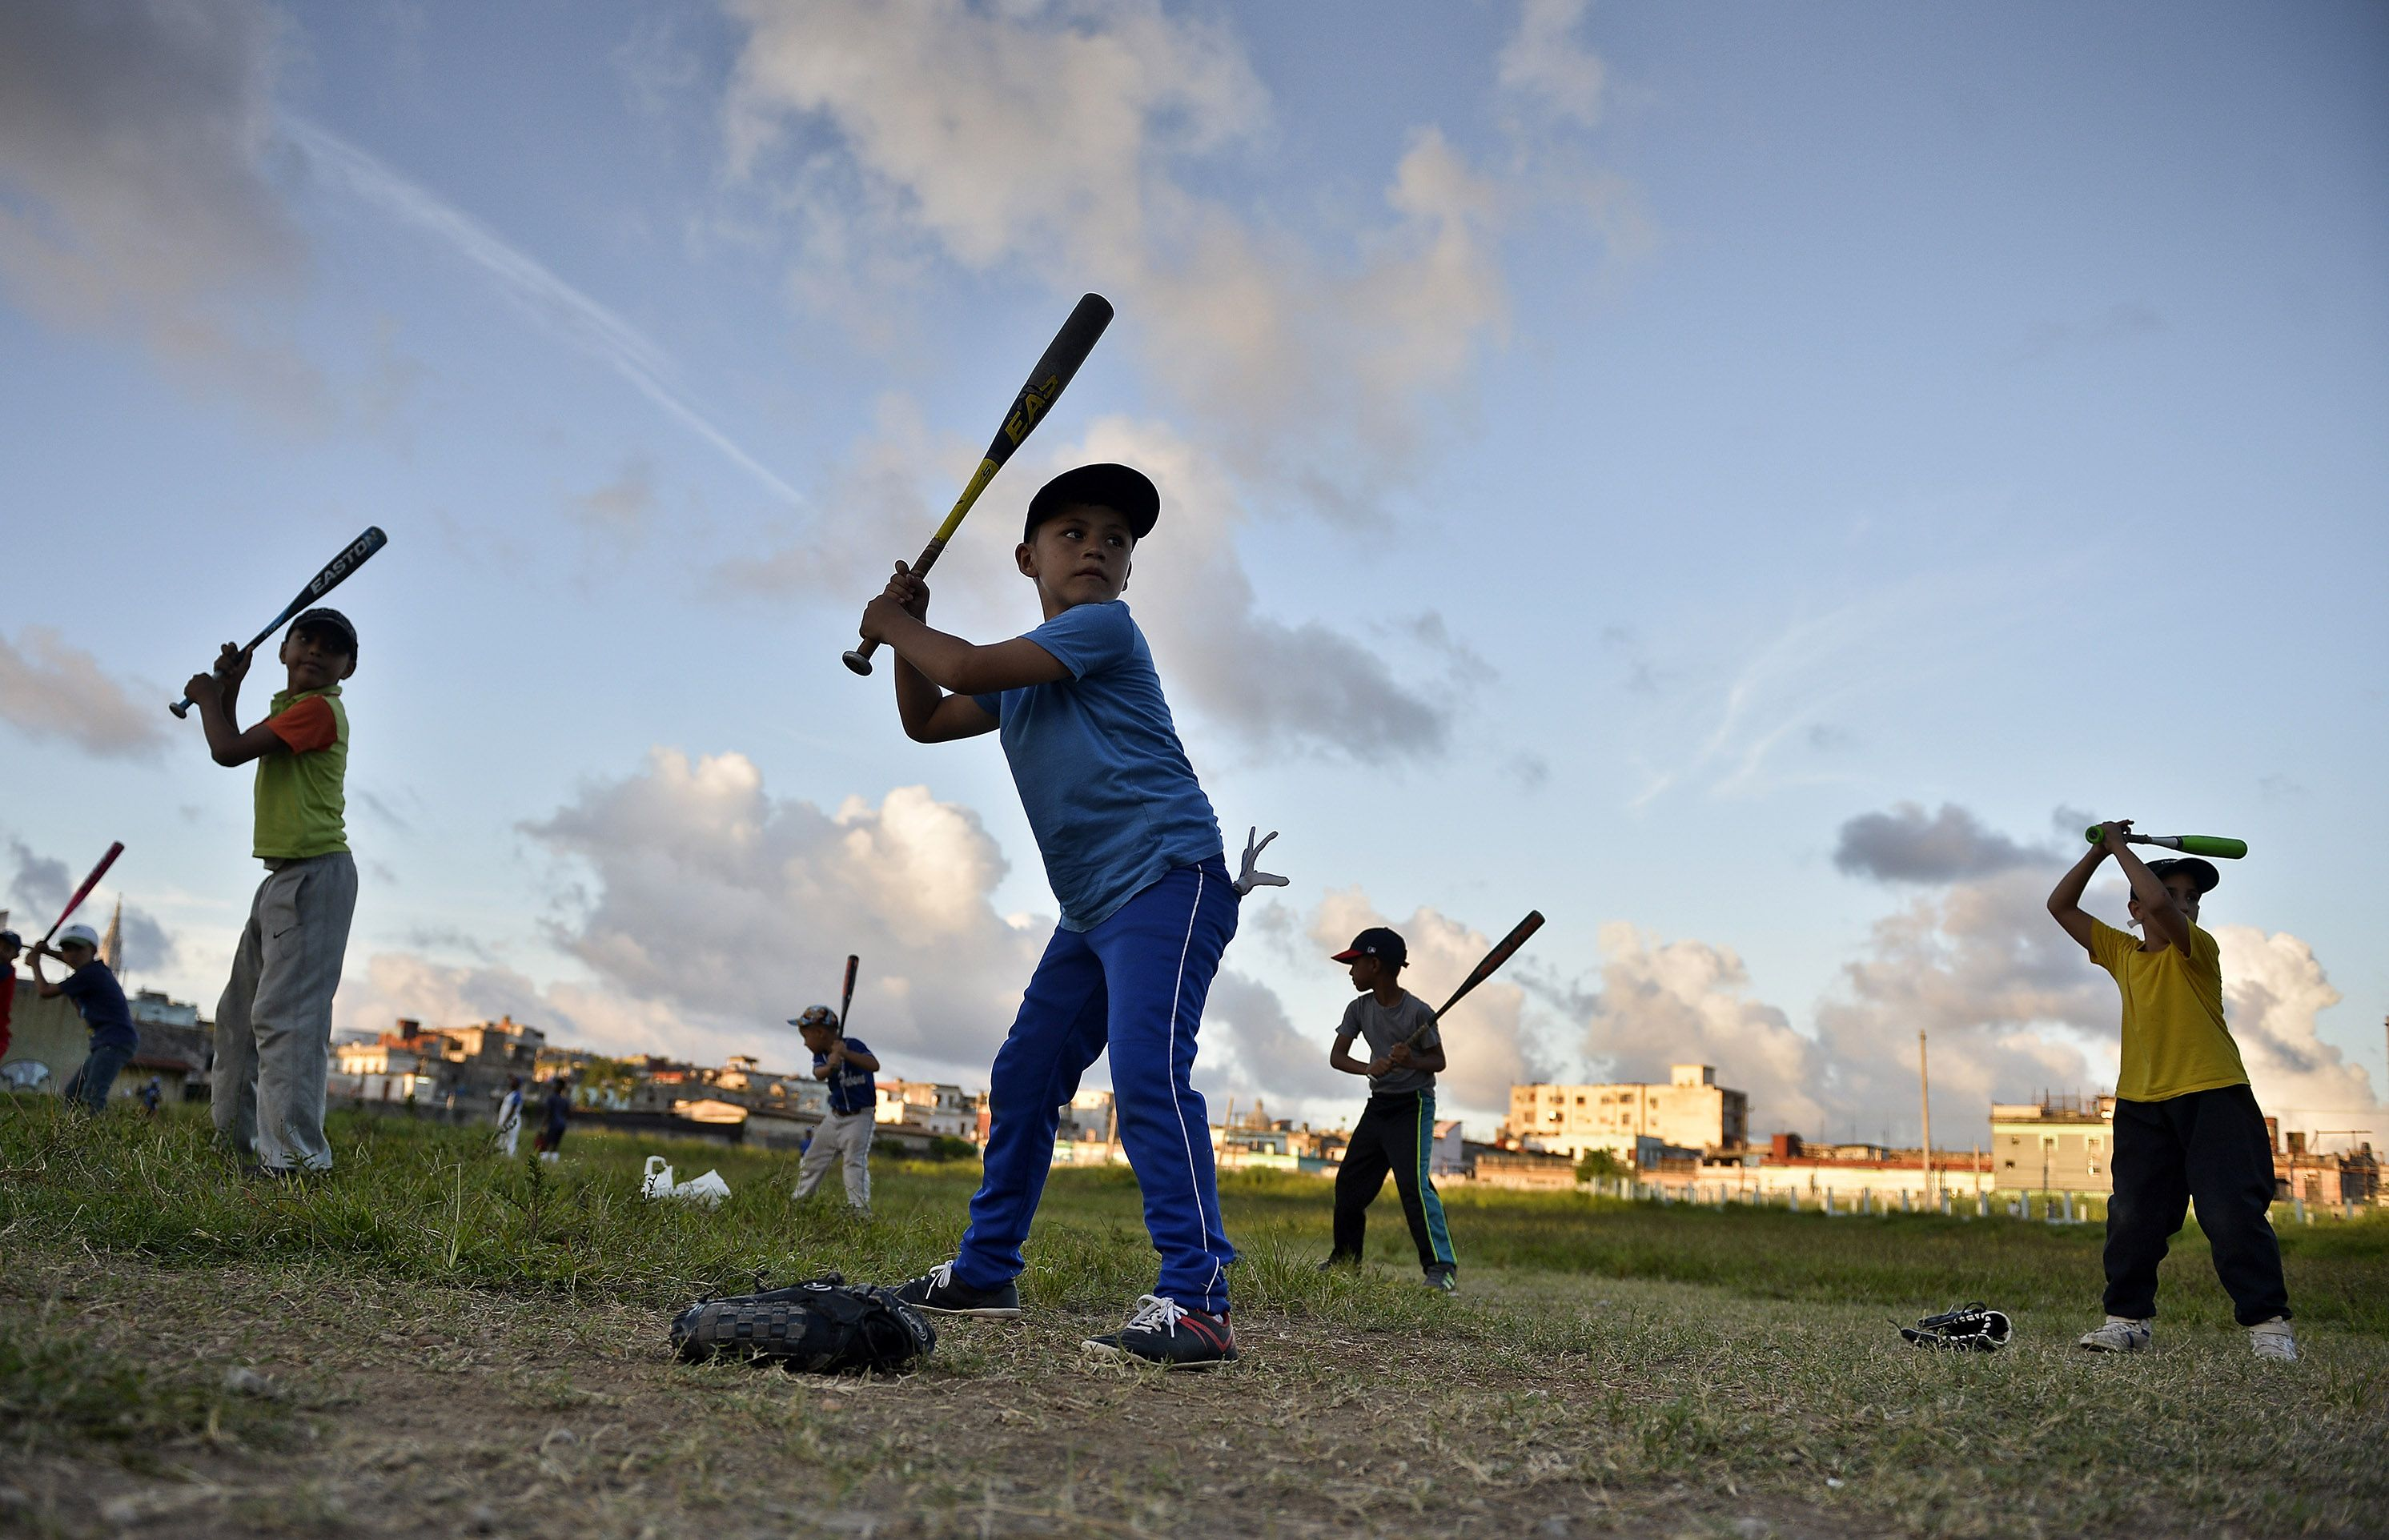 The base of Cuban baseball needs an important injection of implements and resources to improve local playing fields. Photo: Taken from Eawaz.